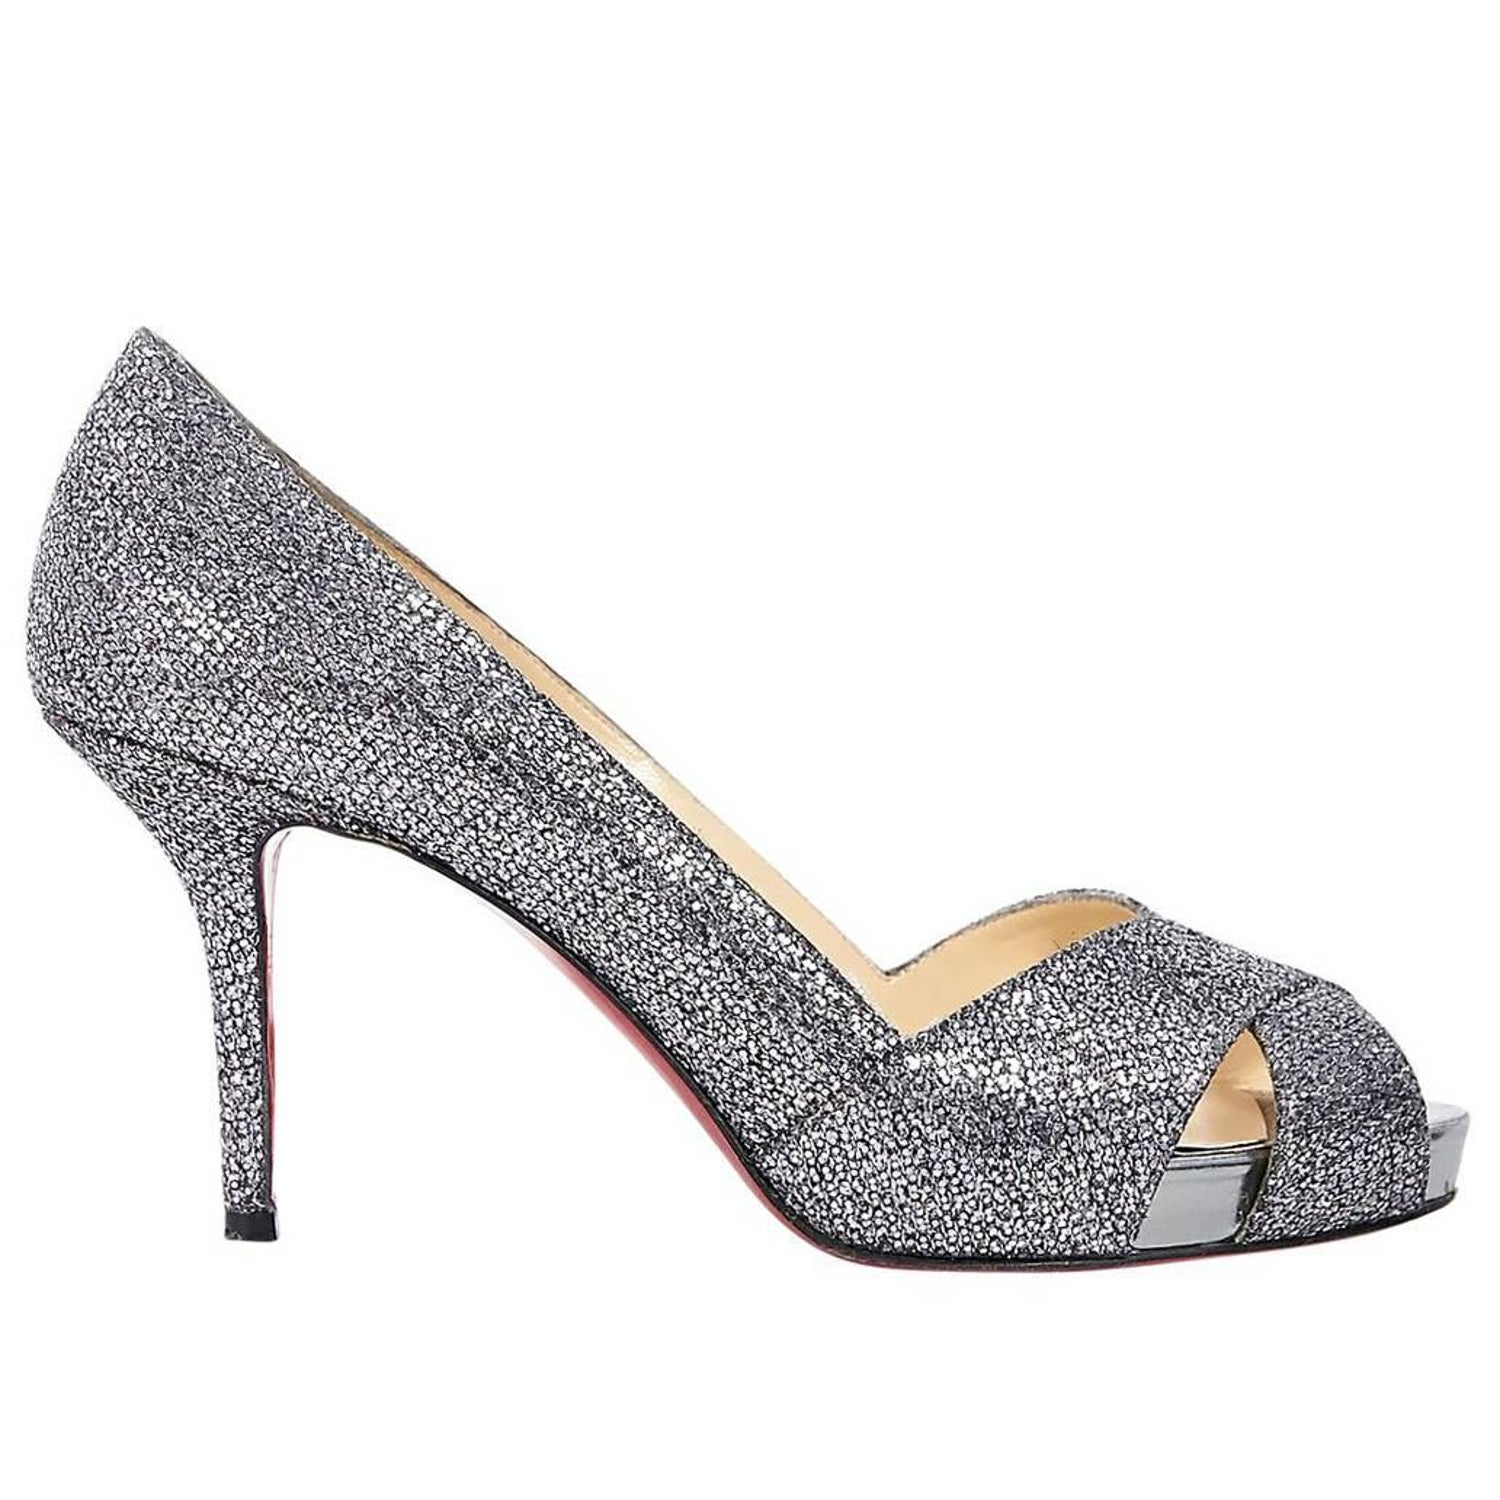 309c89a64728 Metallic Silver Christian Louboutin Glitter Pumps For Sale at 1stdibs